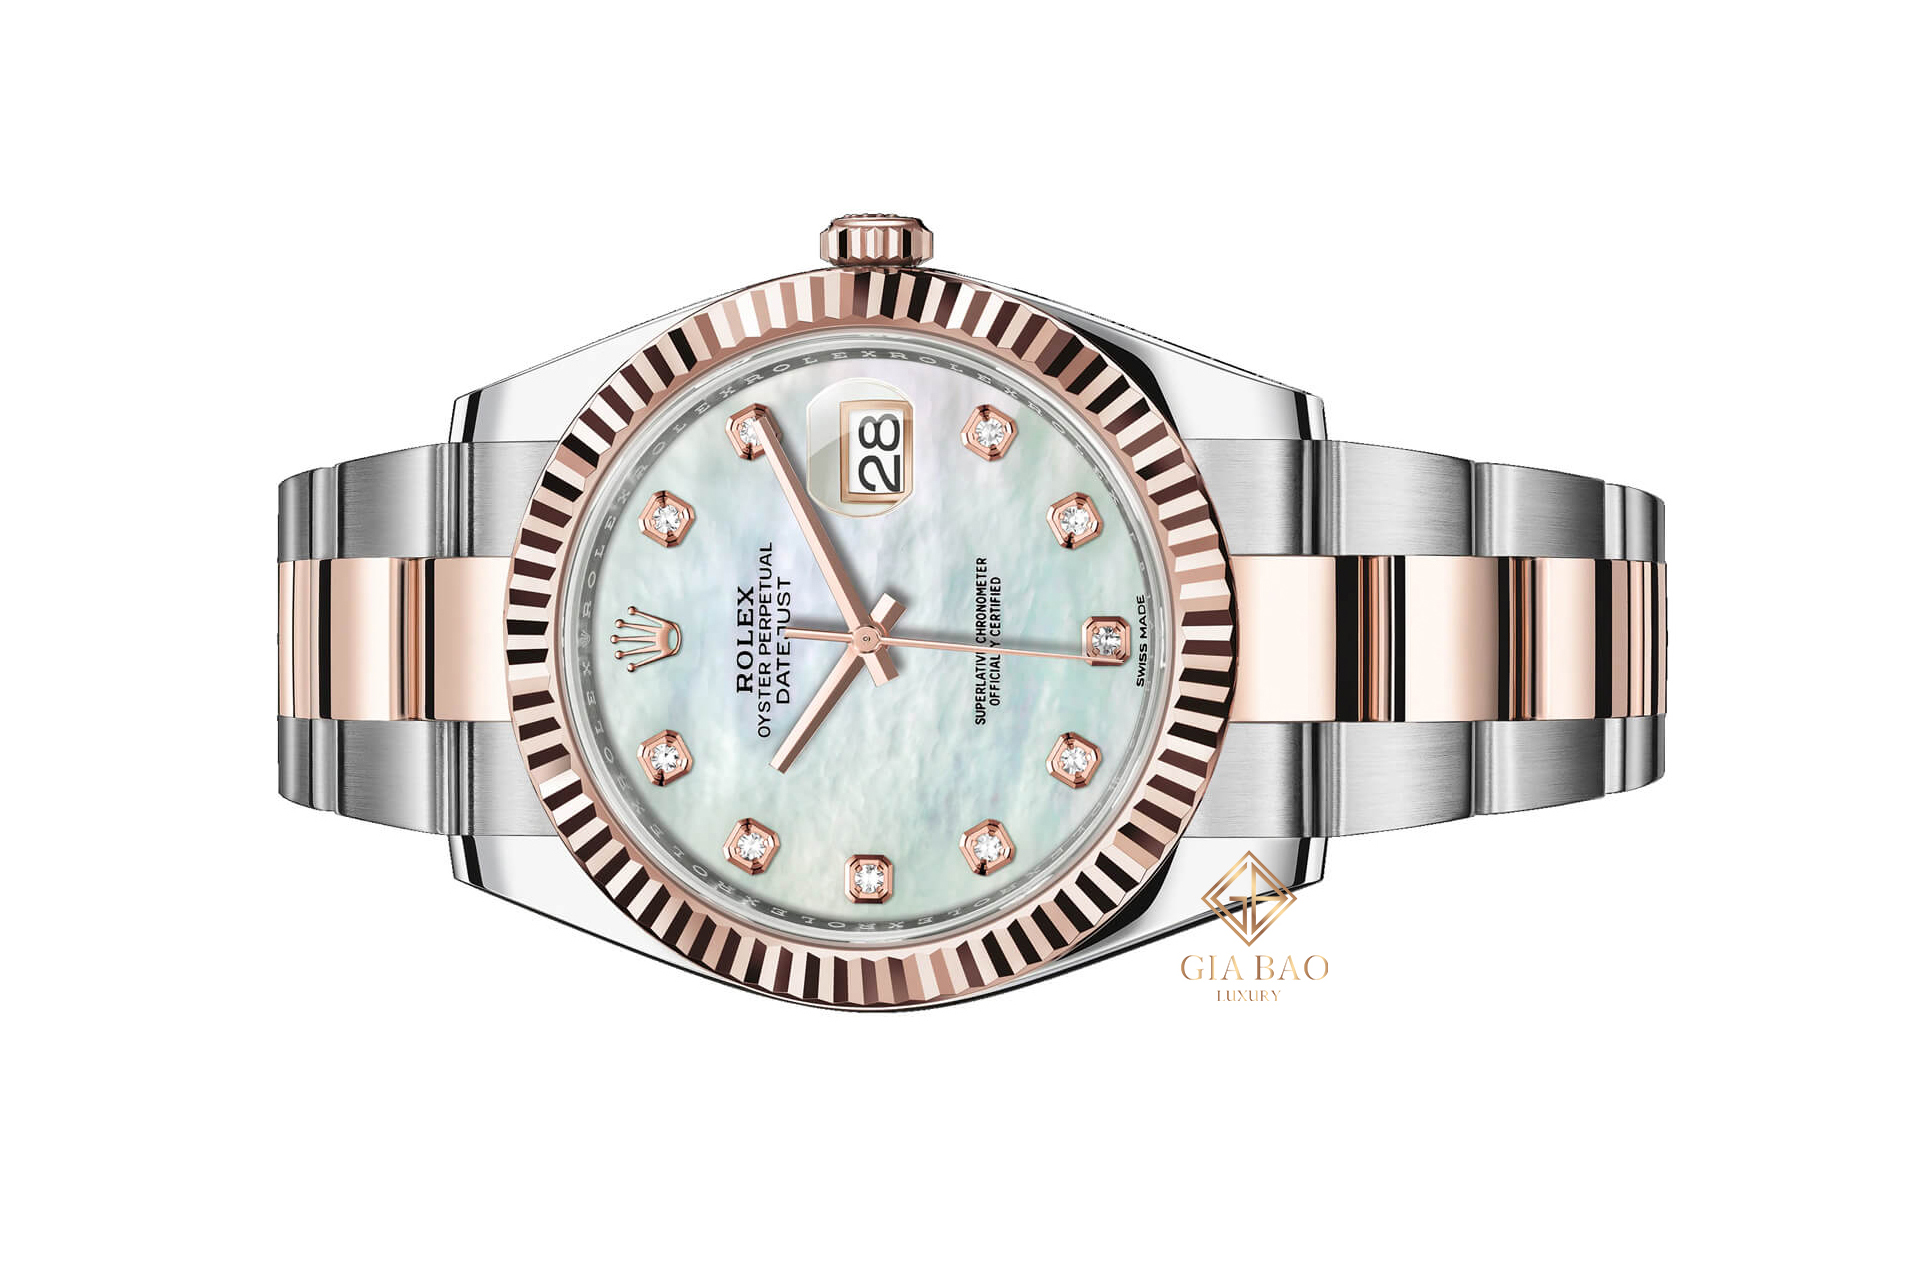 Đồng Hồ Rolex Datejust 41 126331 Mặt Số Vỏ Trai Trắng Dây Đeo Oyster